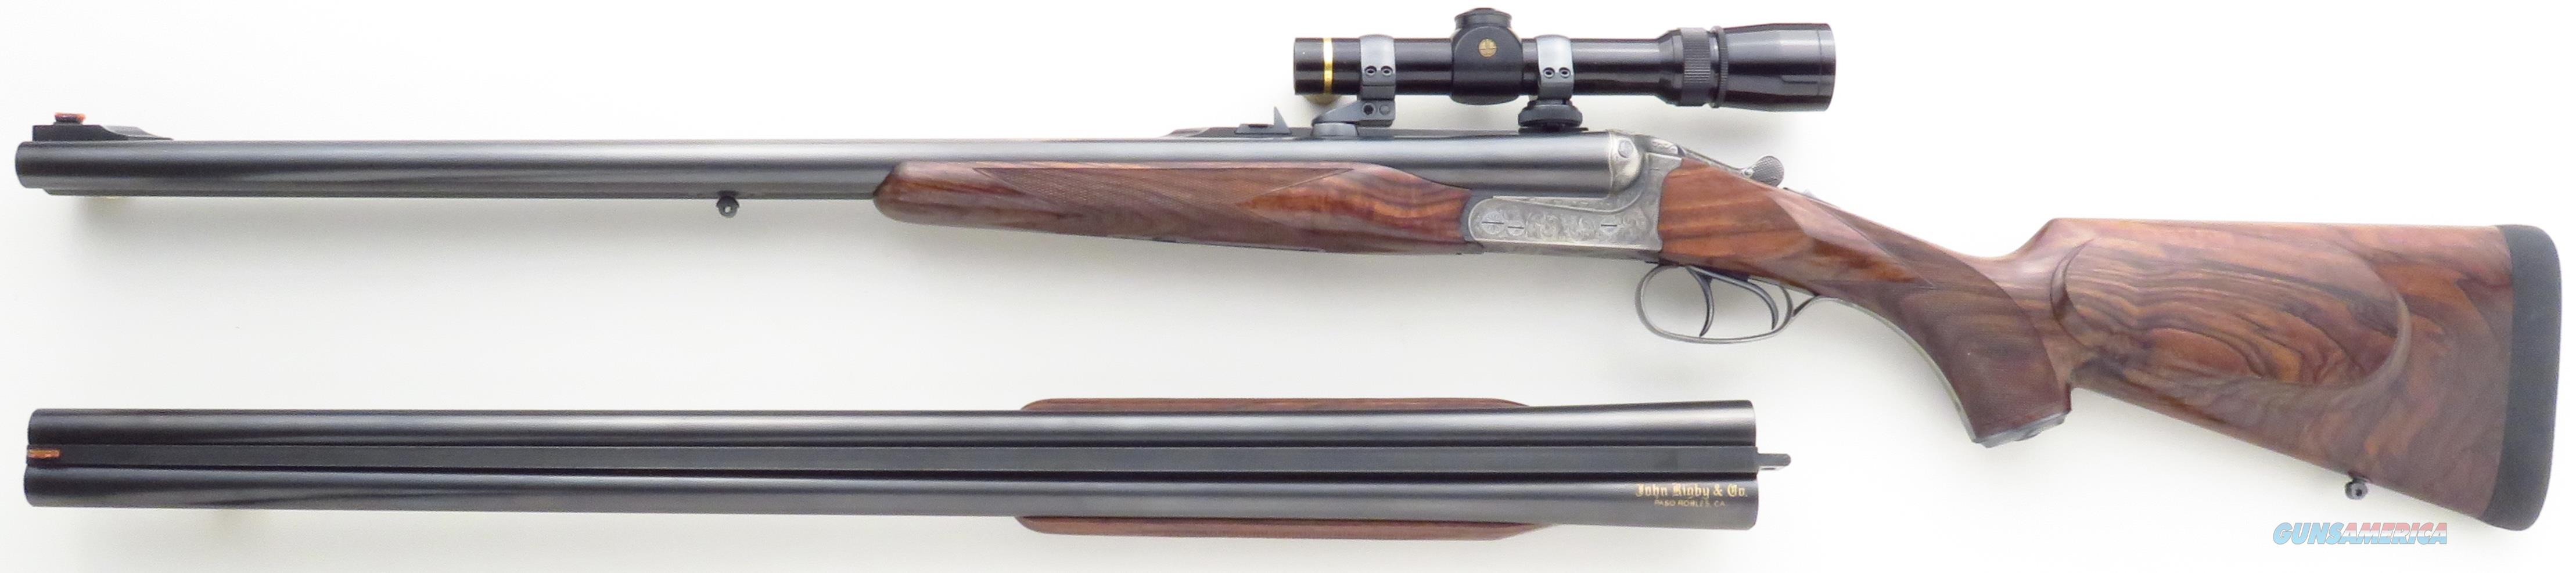 Rigby .470 Nitro Express, extra 12 gauge barrels, case, engraved, EAA quick detach, scope, case, mint condition  Guns > Rifles > Rigby Rifles